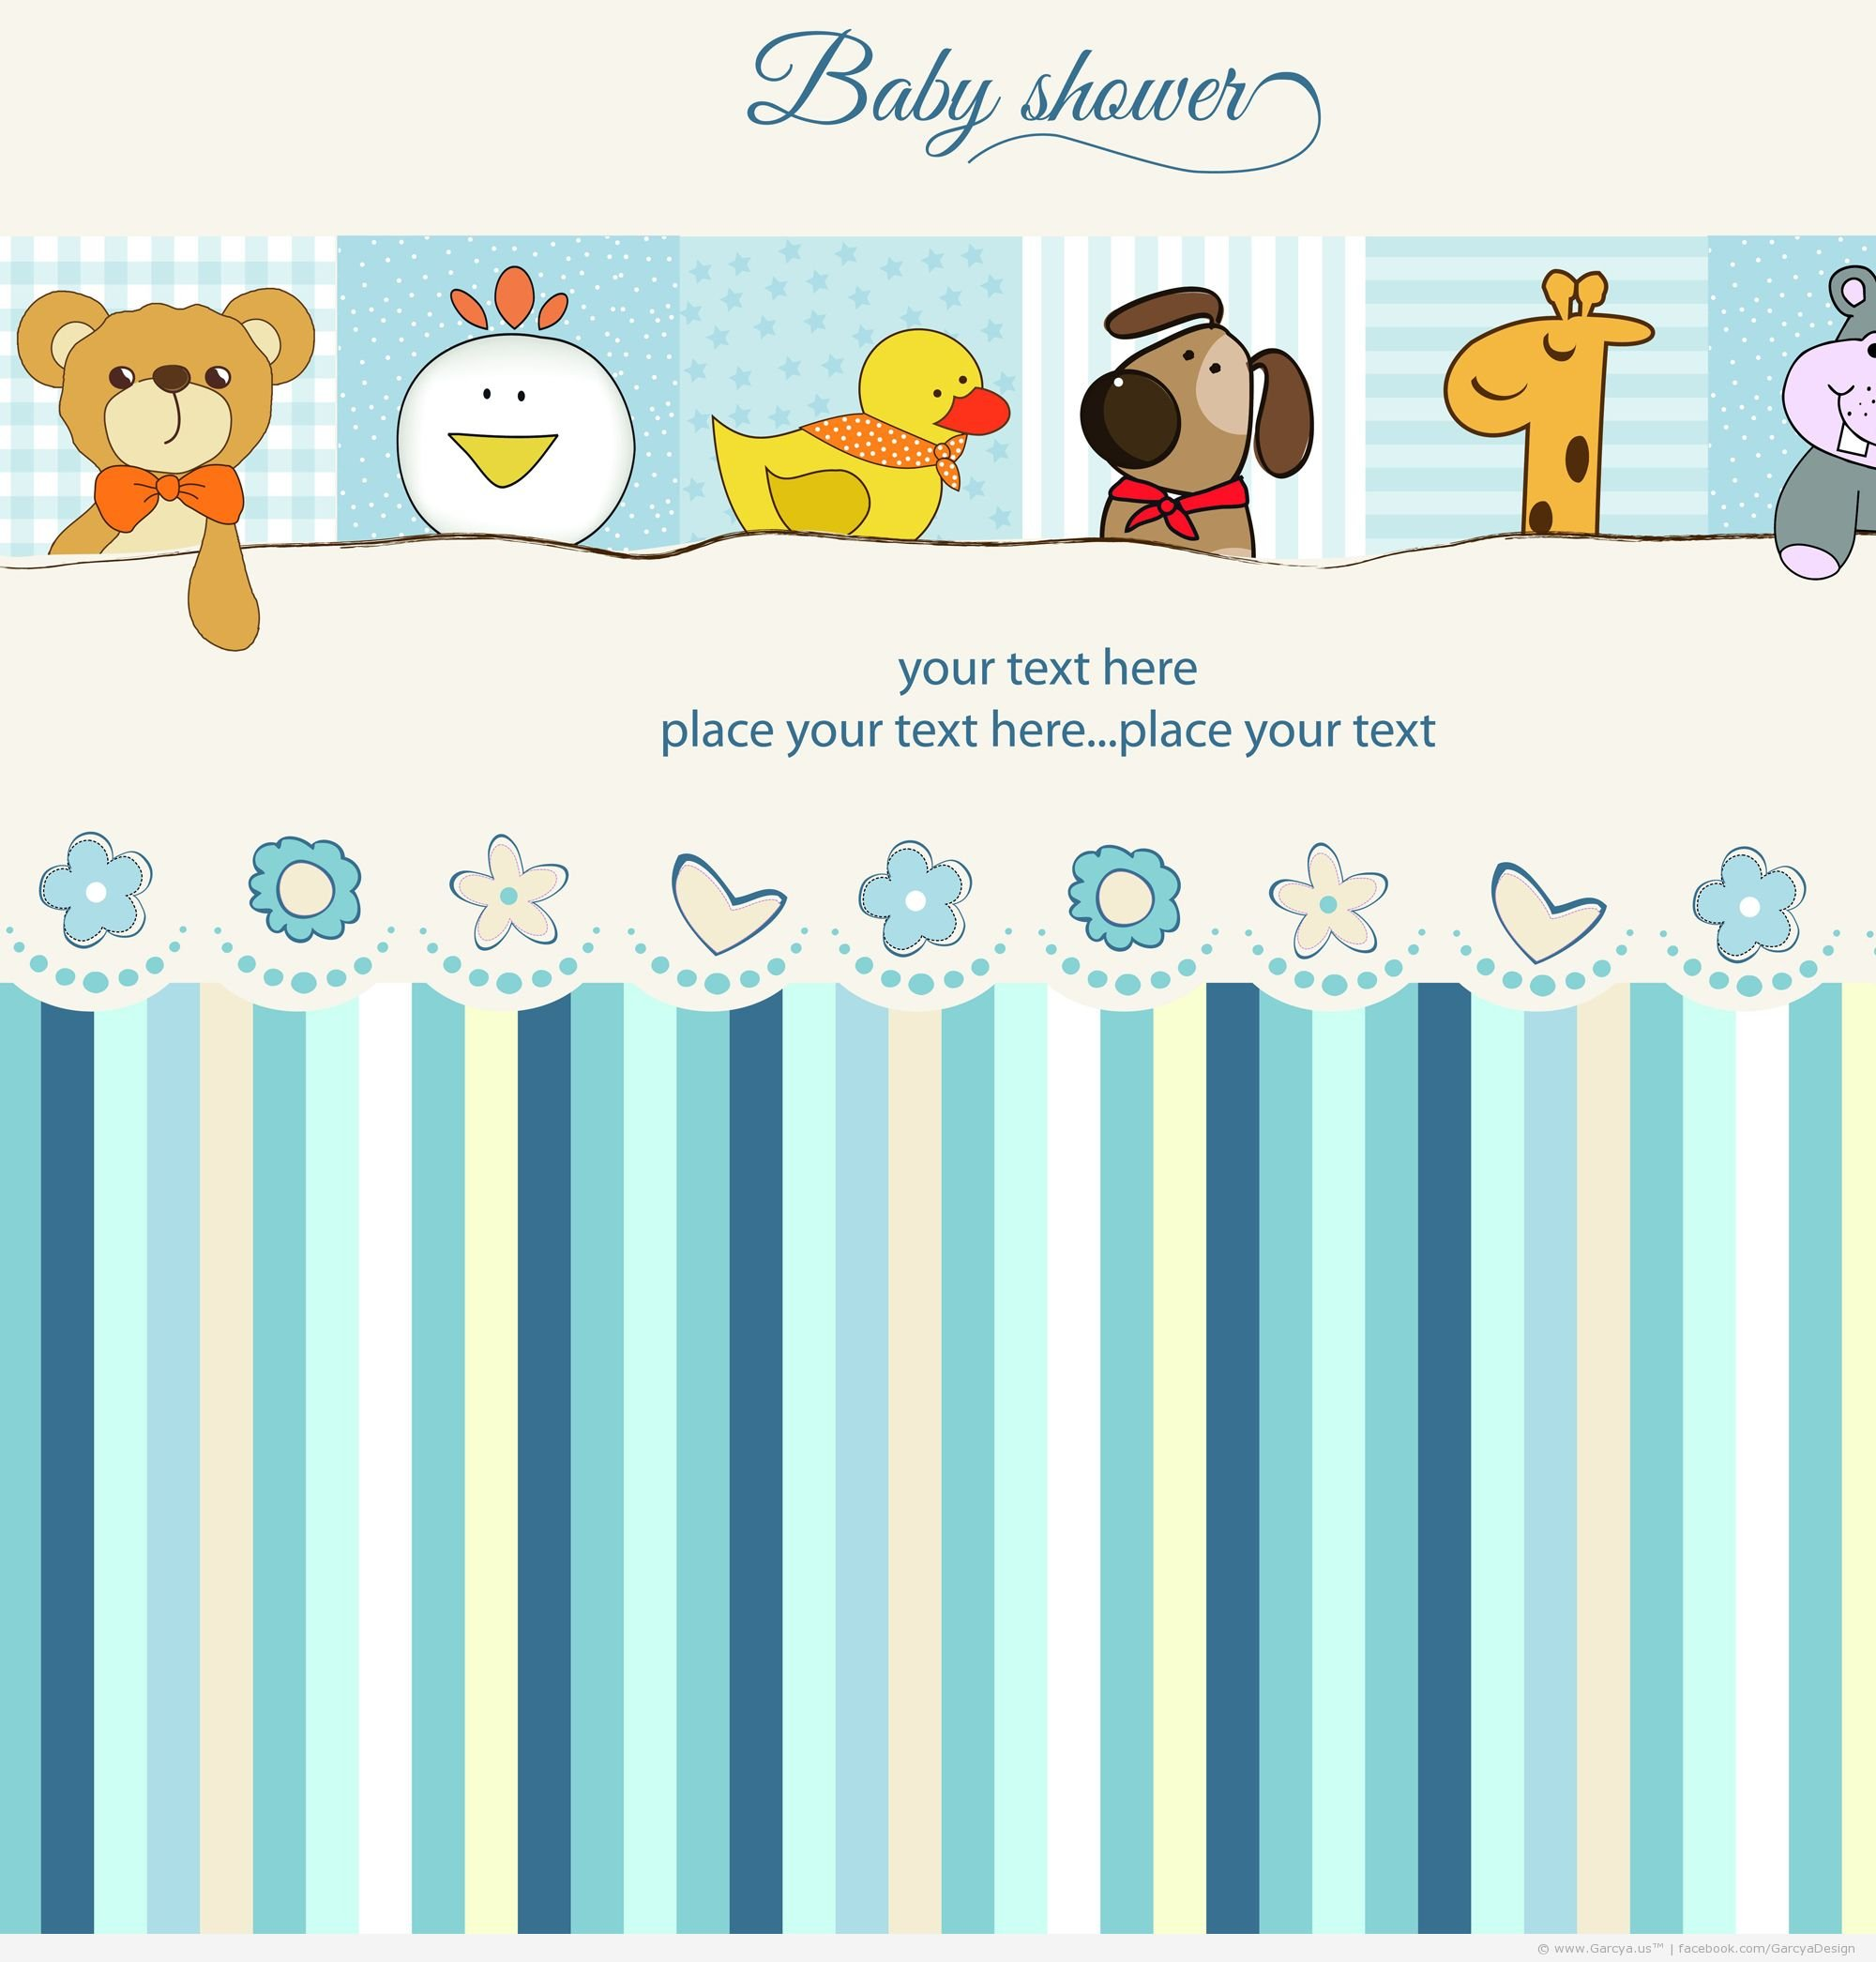 ... Baby Shower Wallpaper 1011x1011. View 0. You can also subscribe to the feed for to get all the vectors 2000x2092